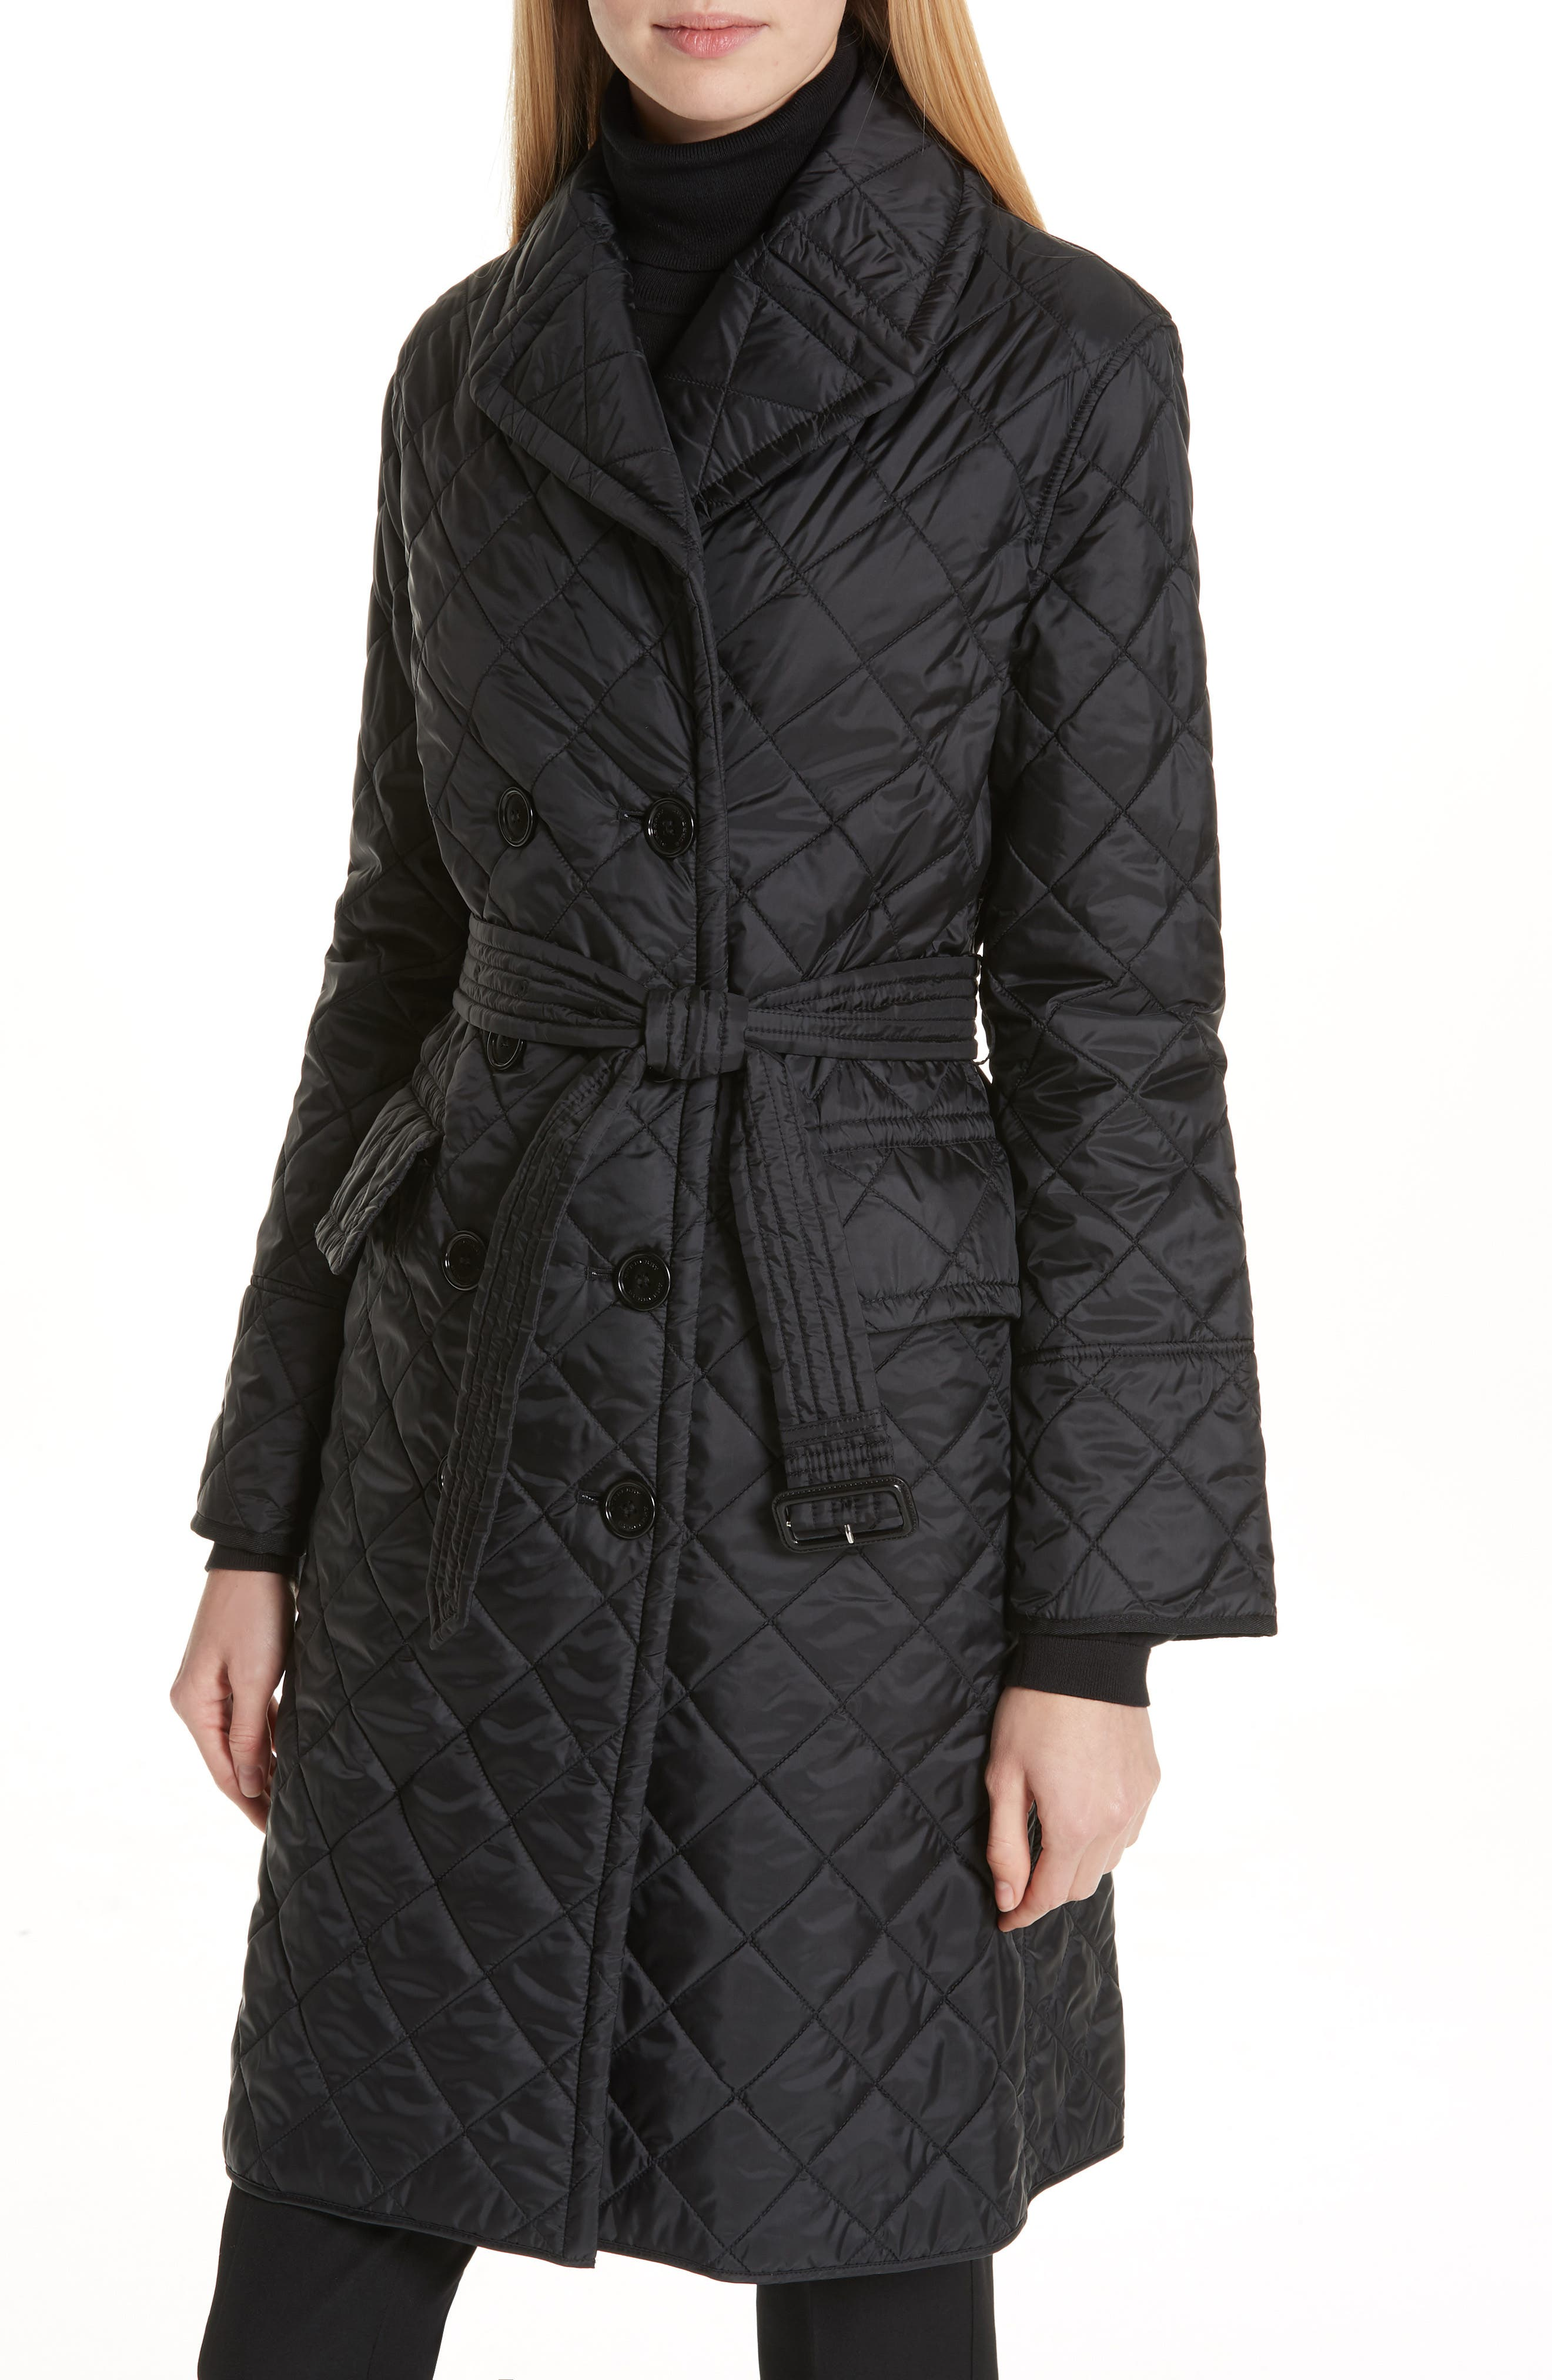 BURBERRY, Horberie Quilted Trench Coat, Alternate thumbnail 4, color, BLACK